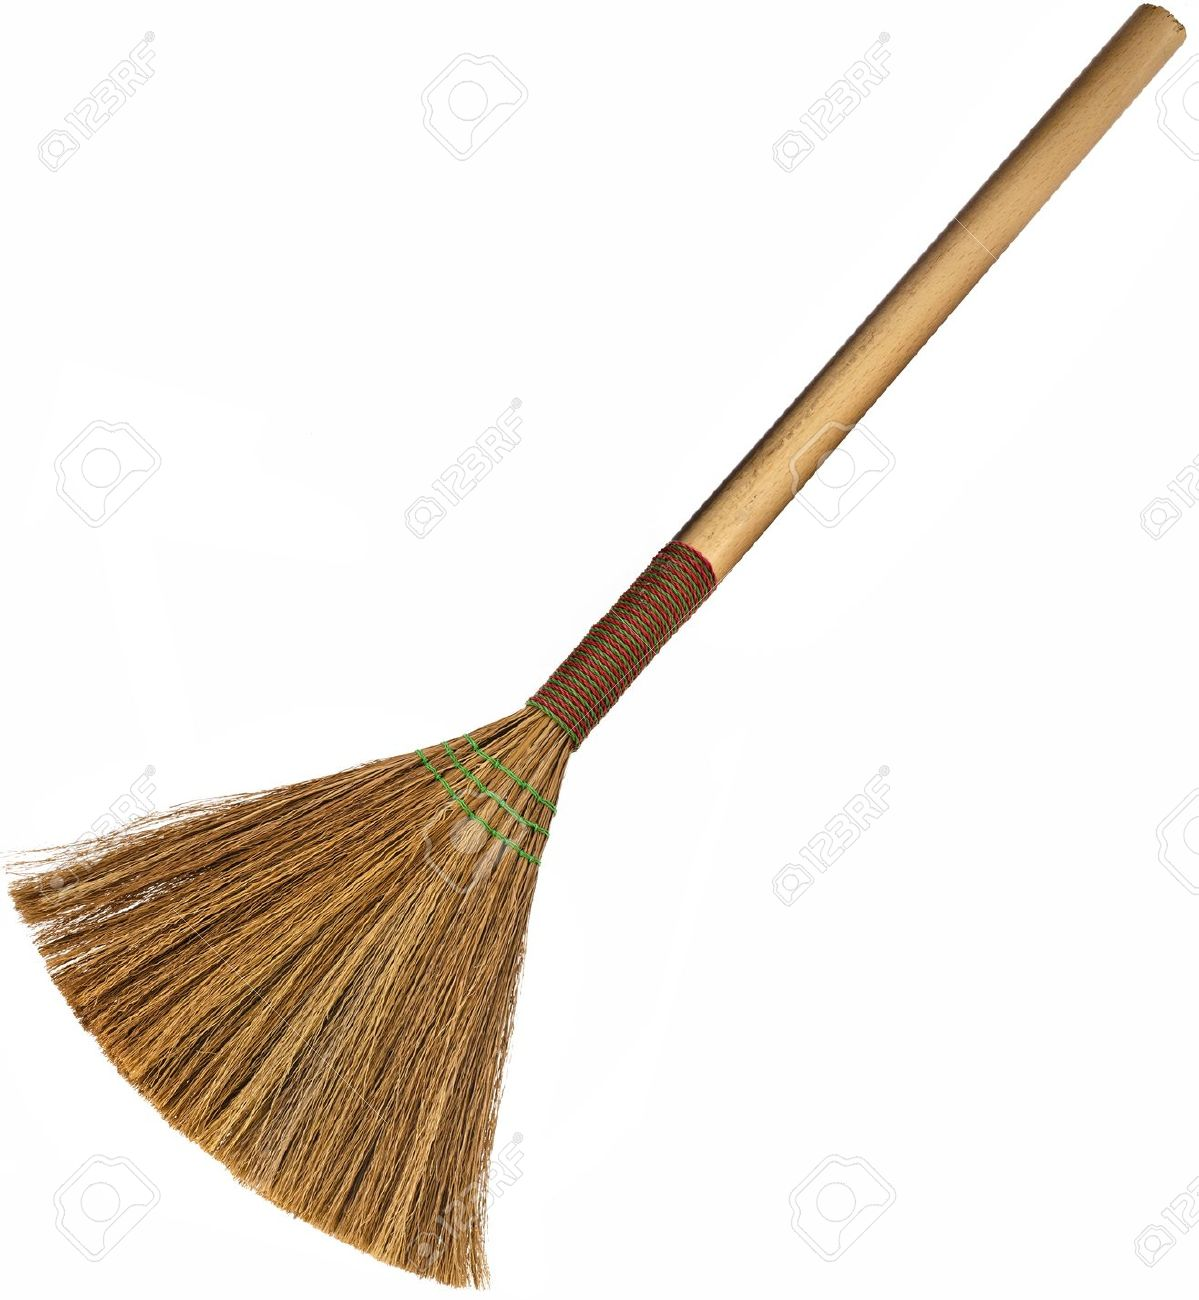 Broom Isolated On White Background Stock Photo, Picture And.